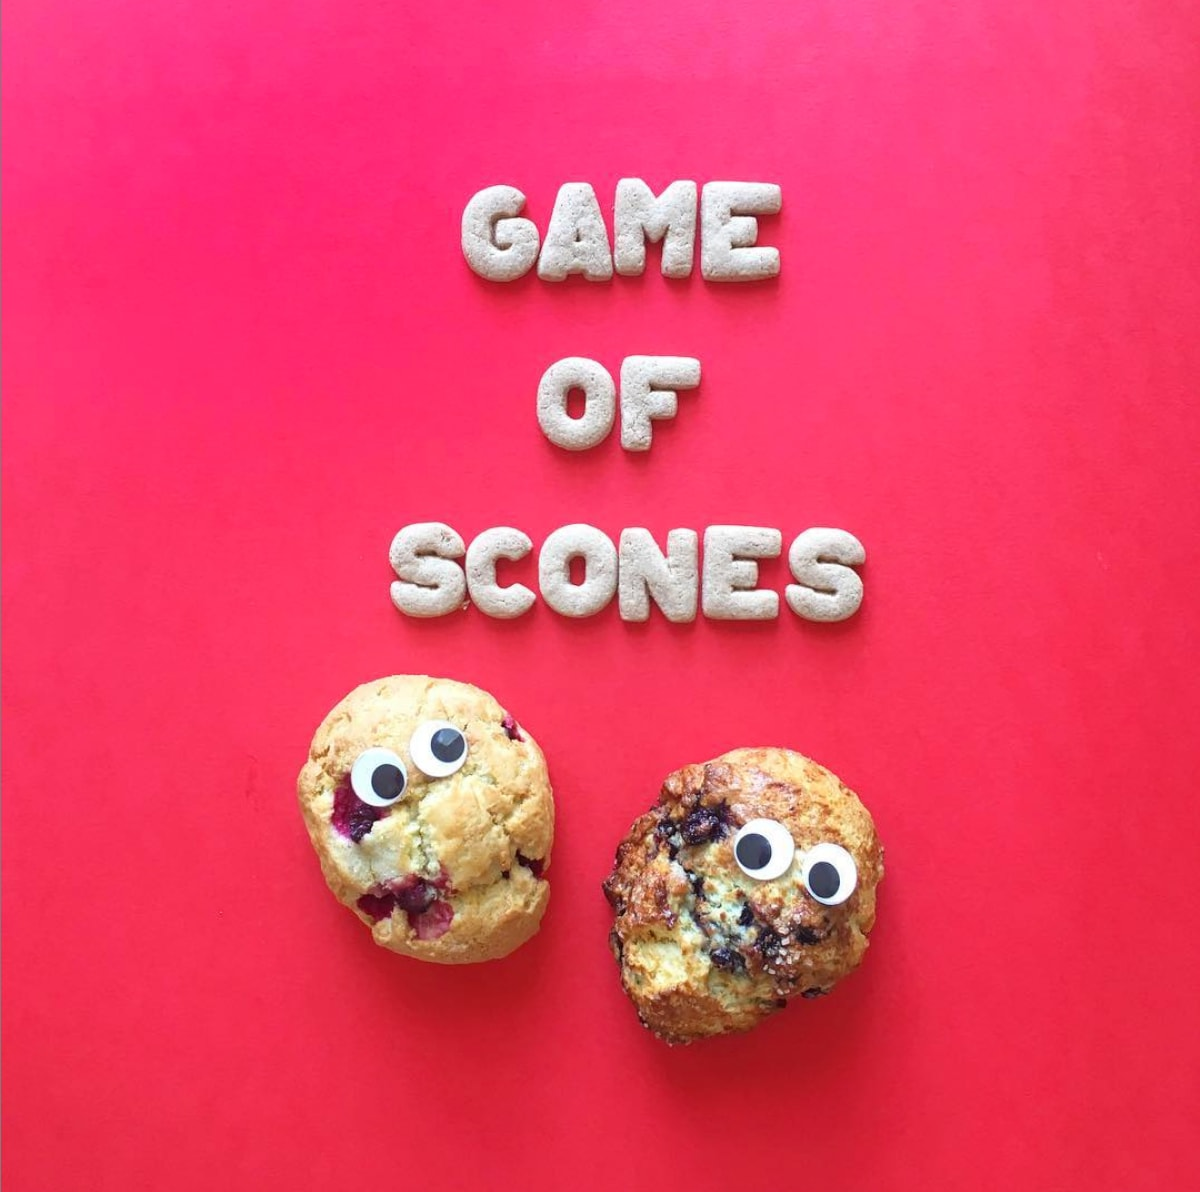 Cake Puns - Game of Scones